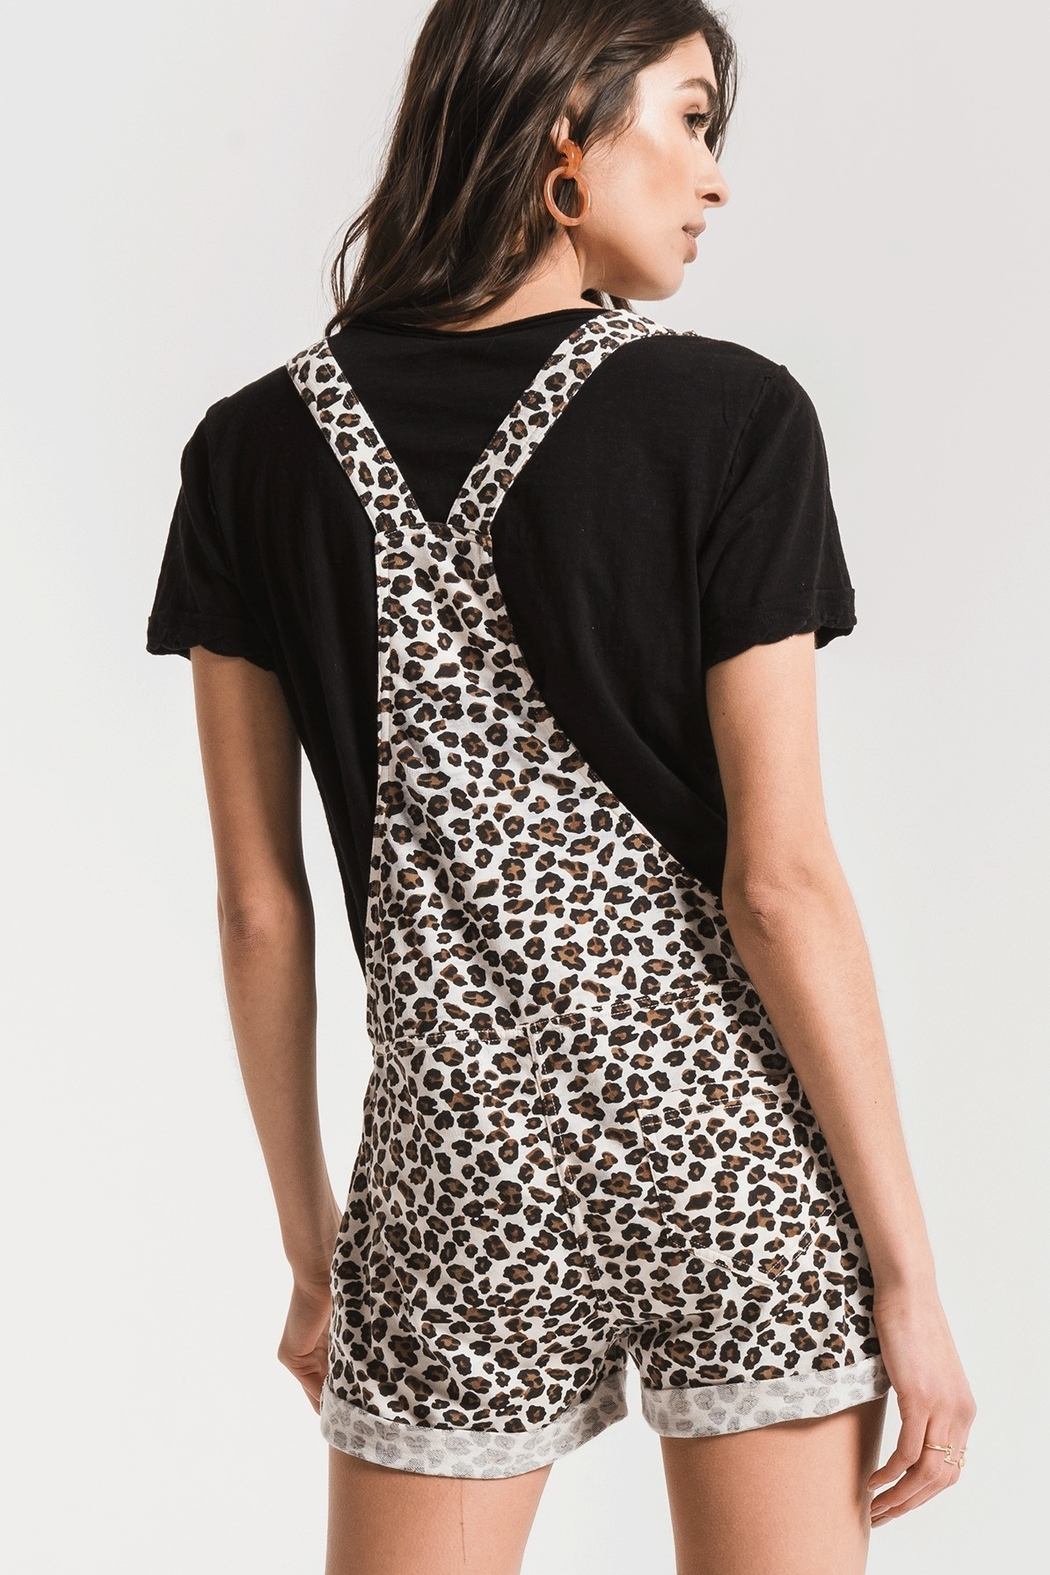 z supply Leopard Short Overall - Side Cropped Image